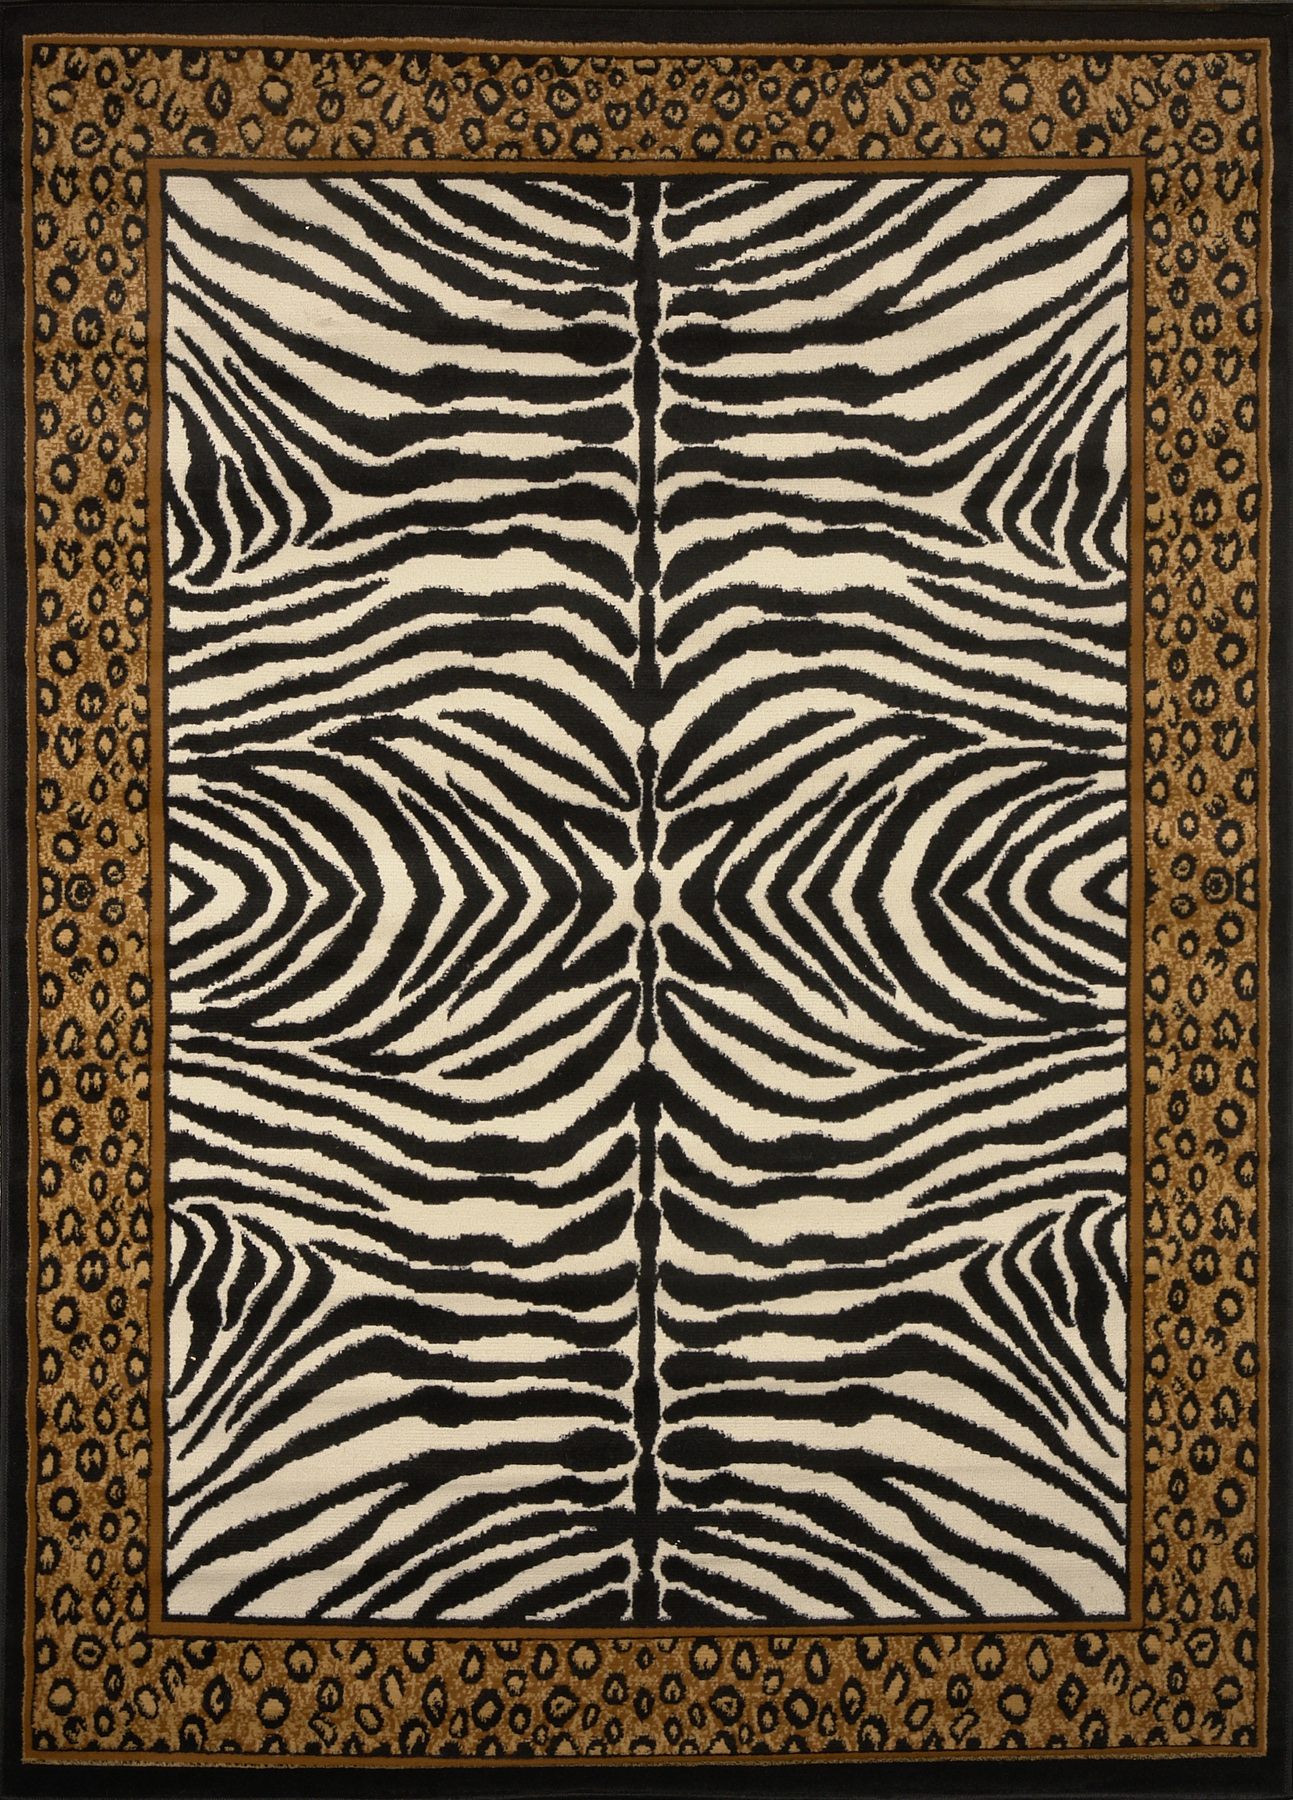 Animal Print Rugs Collection On Ebay